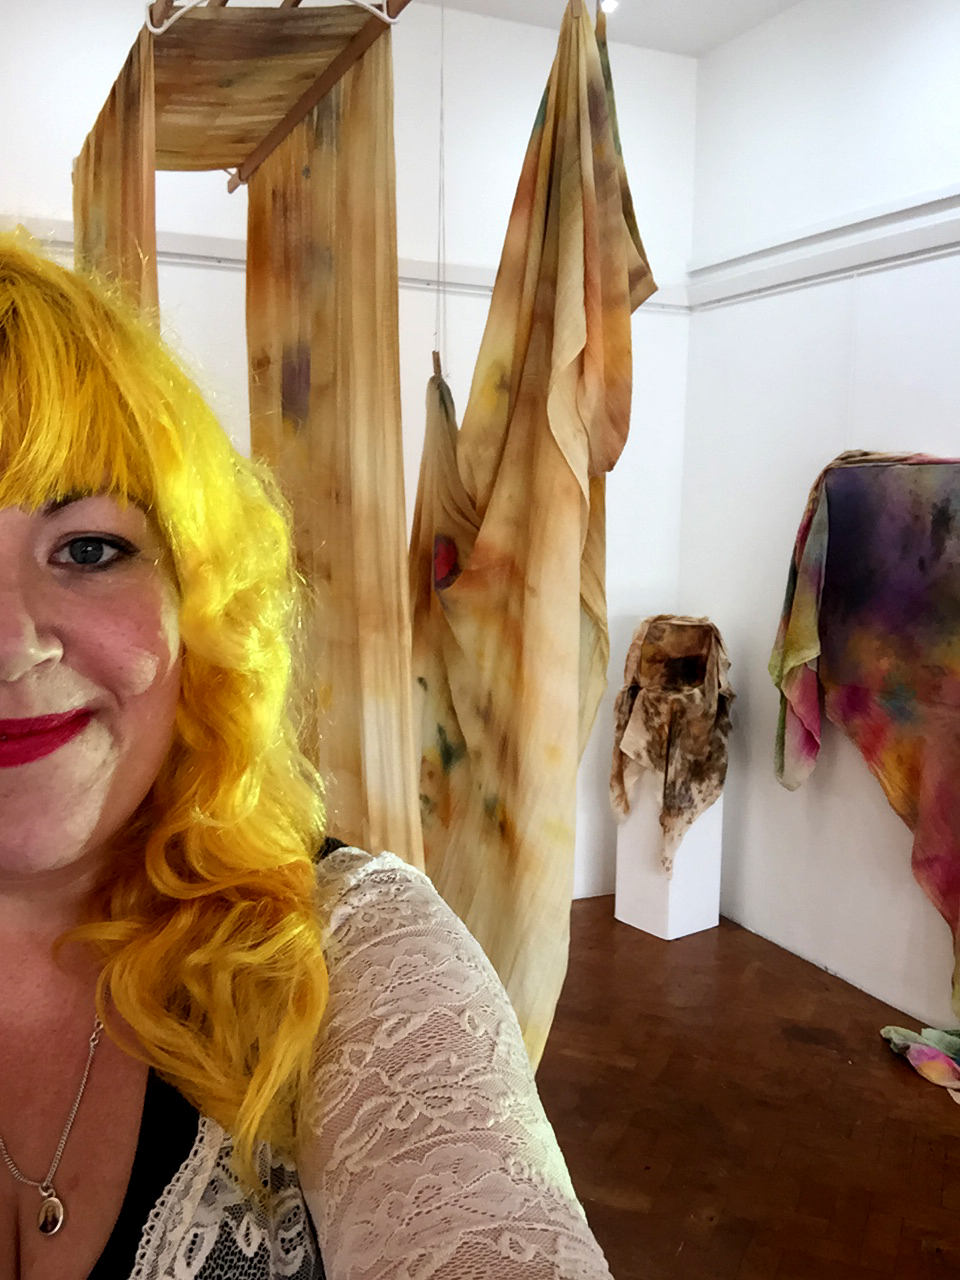 Gratuitous Exhibition Installed Happy Selfie